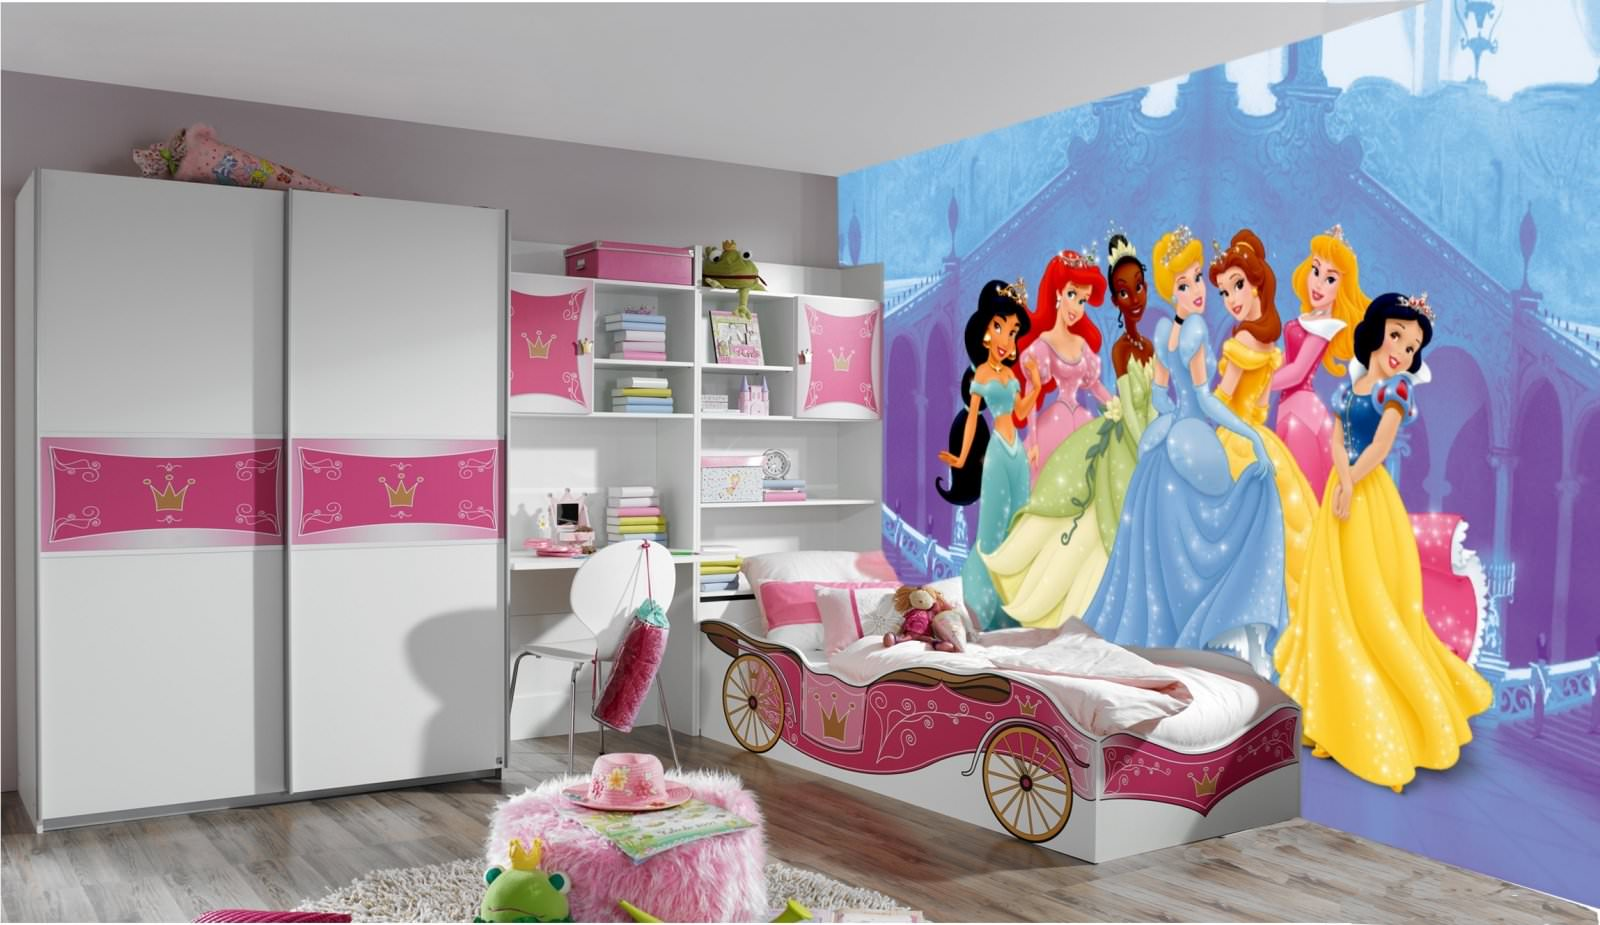 Disney princesse poster papier peint xxl 350x250 cm for Photo comment ideas